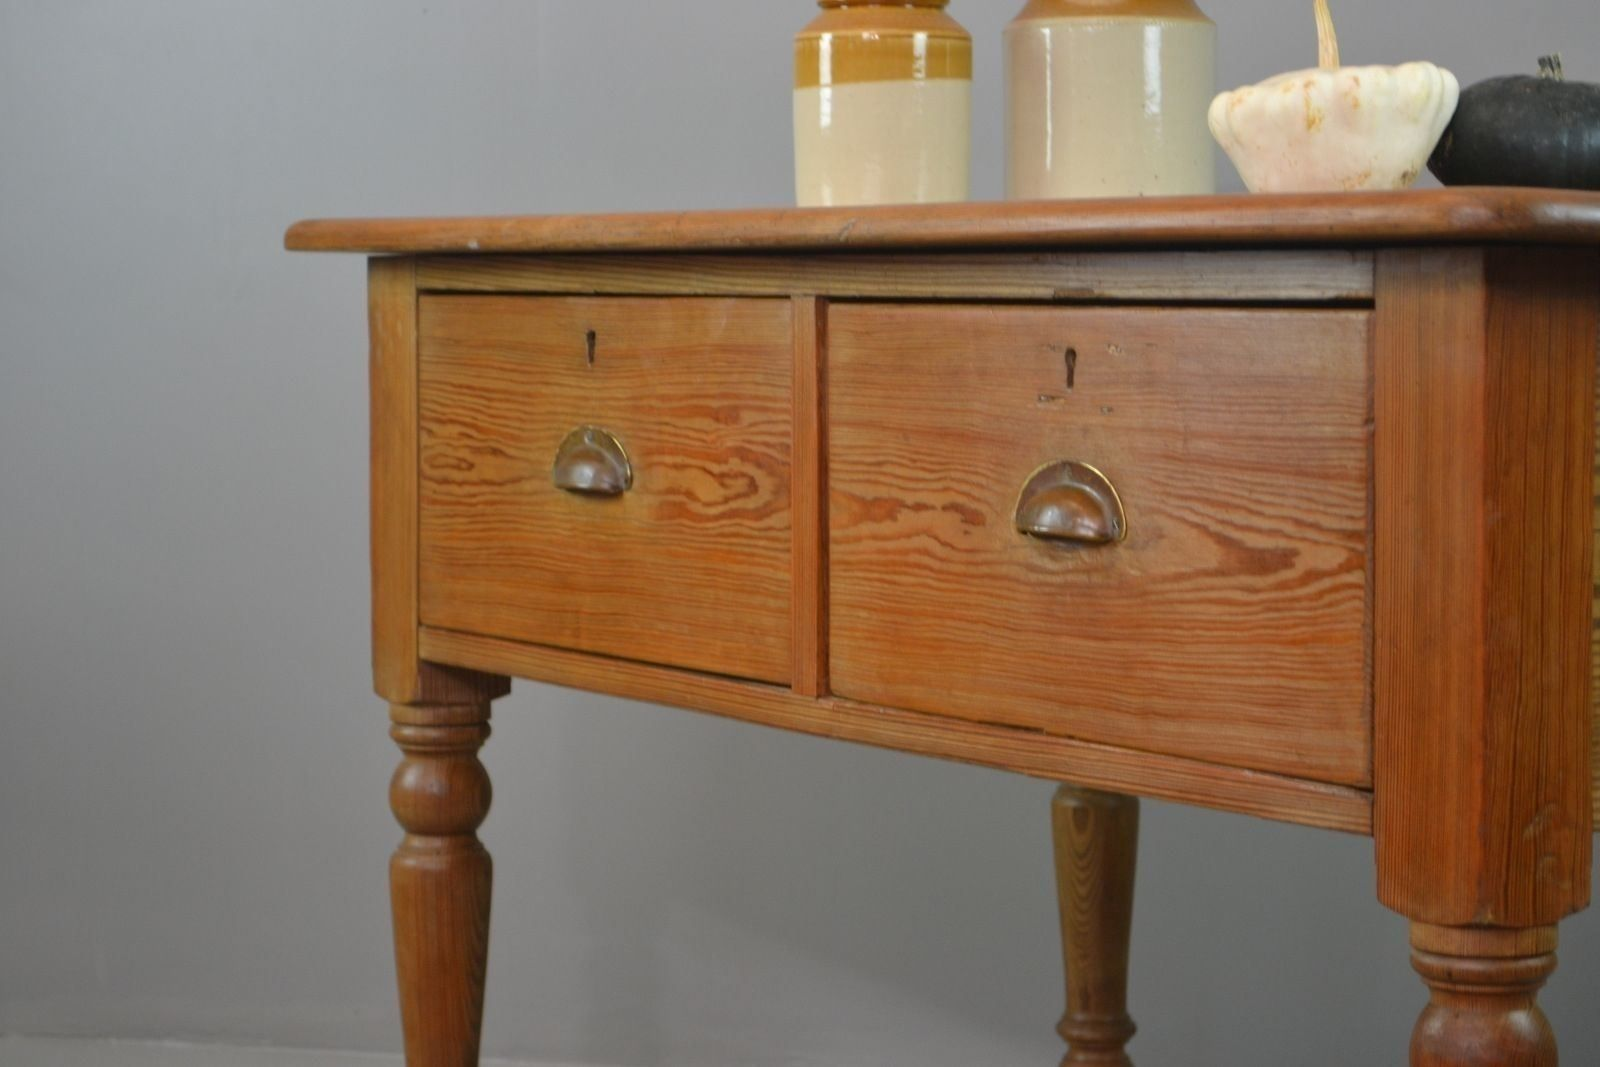 Antique rustic pine kitchen table for sale at pamono - Rustic kitchen tables for sale ...